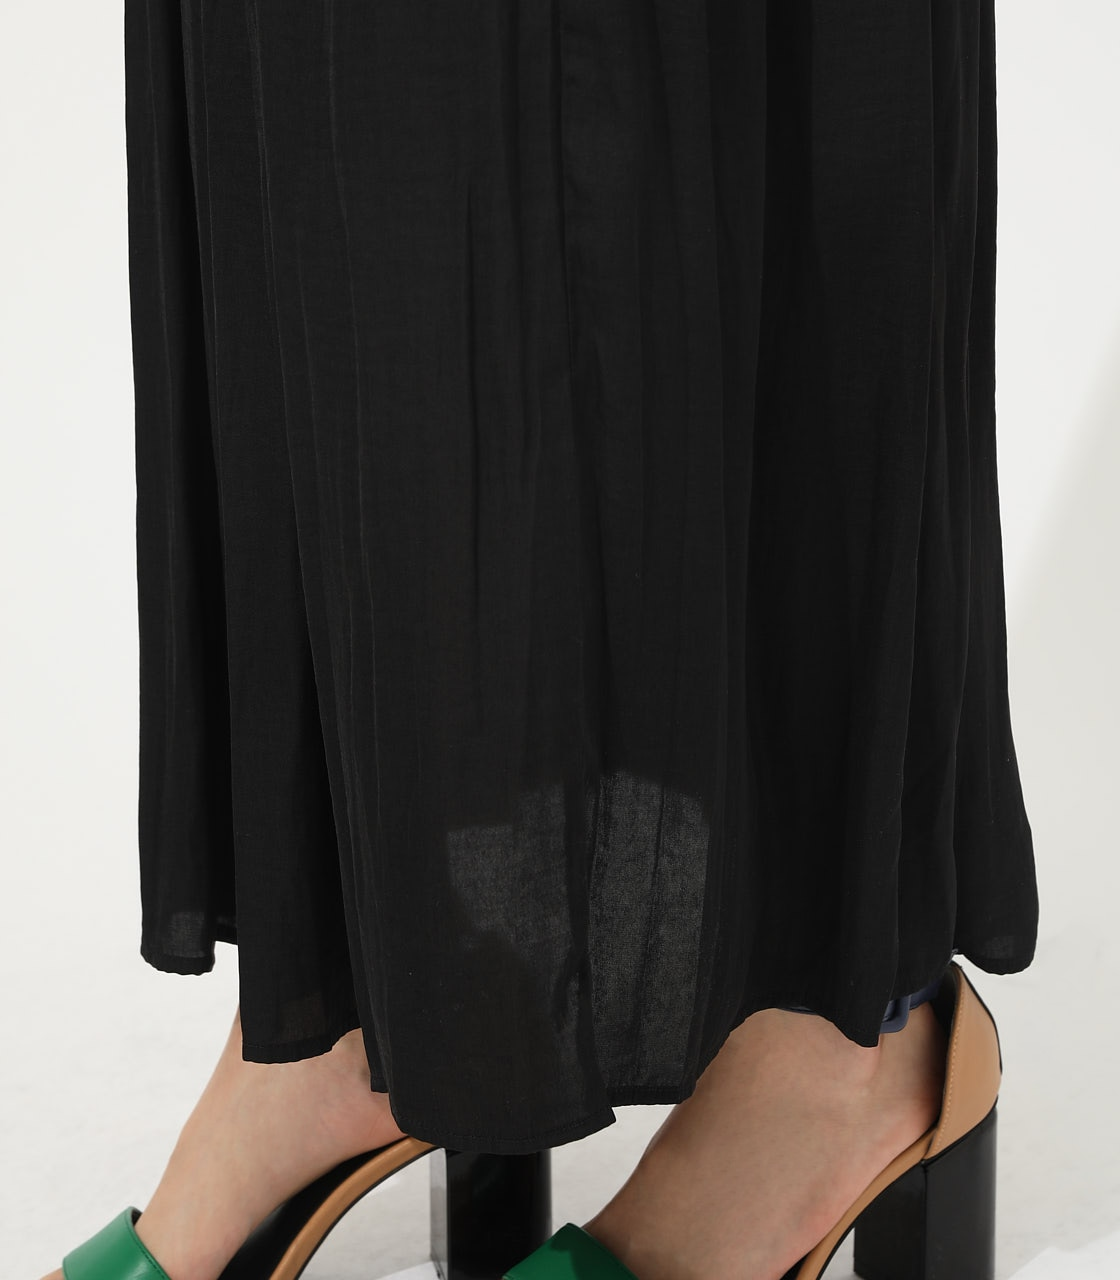 【AZUL BY MOUSSY】GATHER FLARE SKIRT 詳細画像 BLK 9